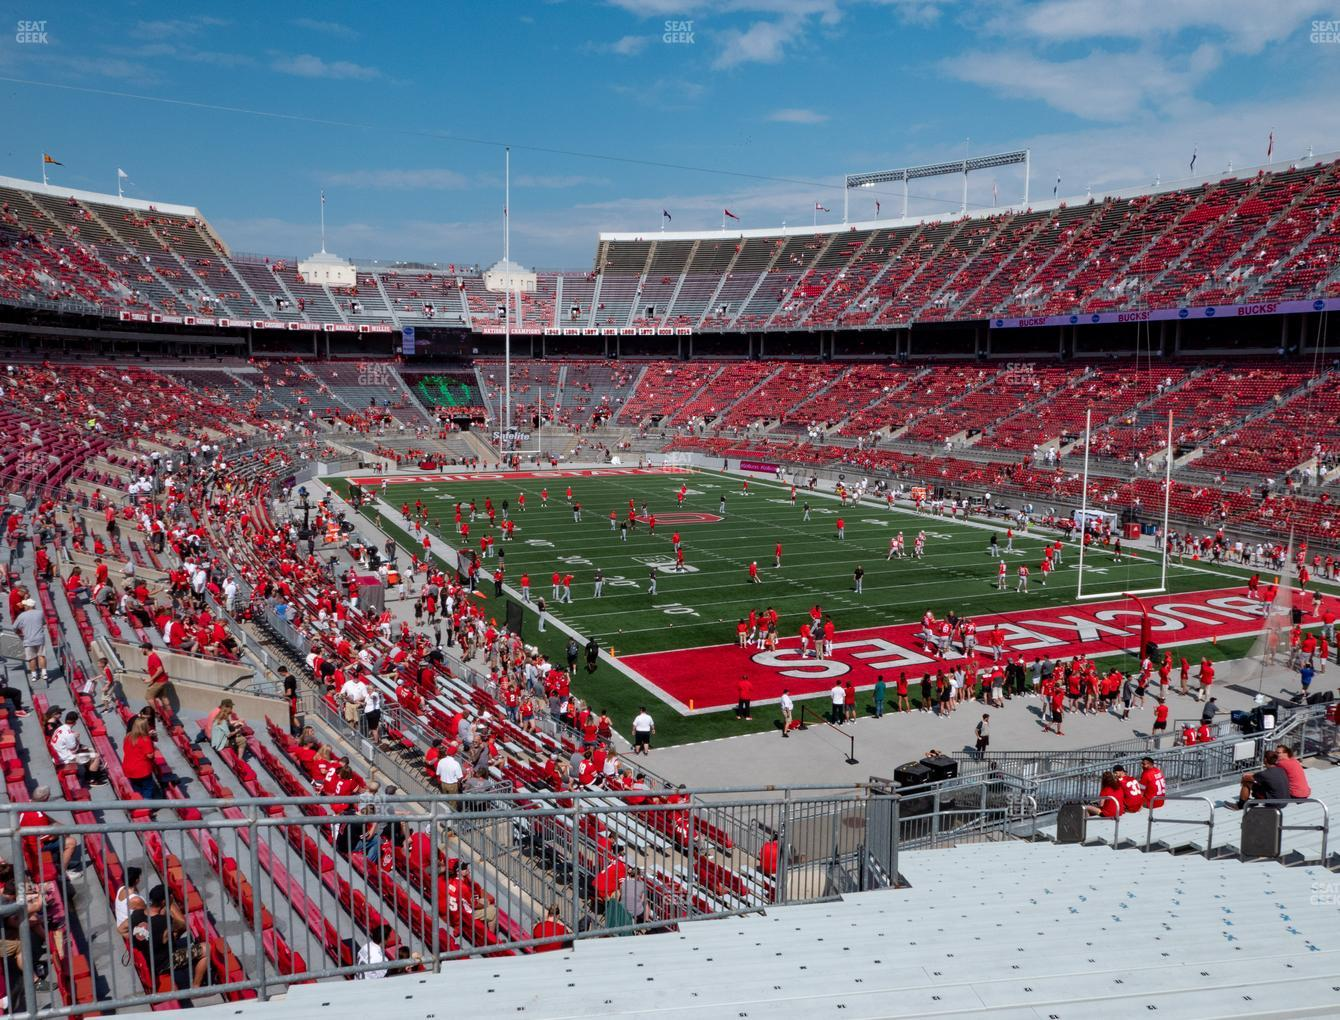 Ohio State Buckeyes Football at Ohio Stadium Section 33 A View